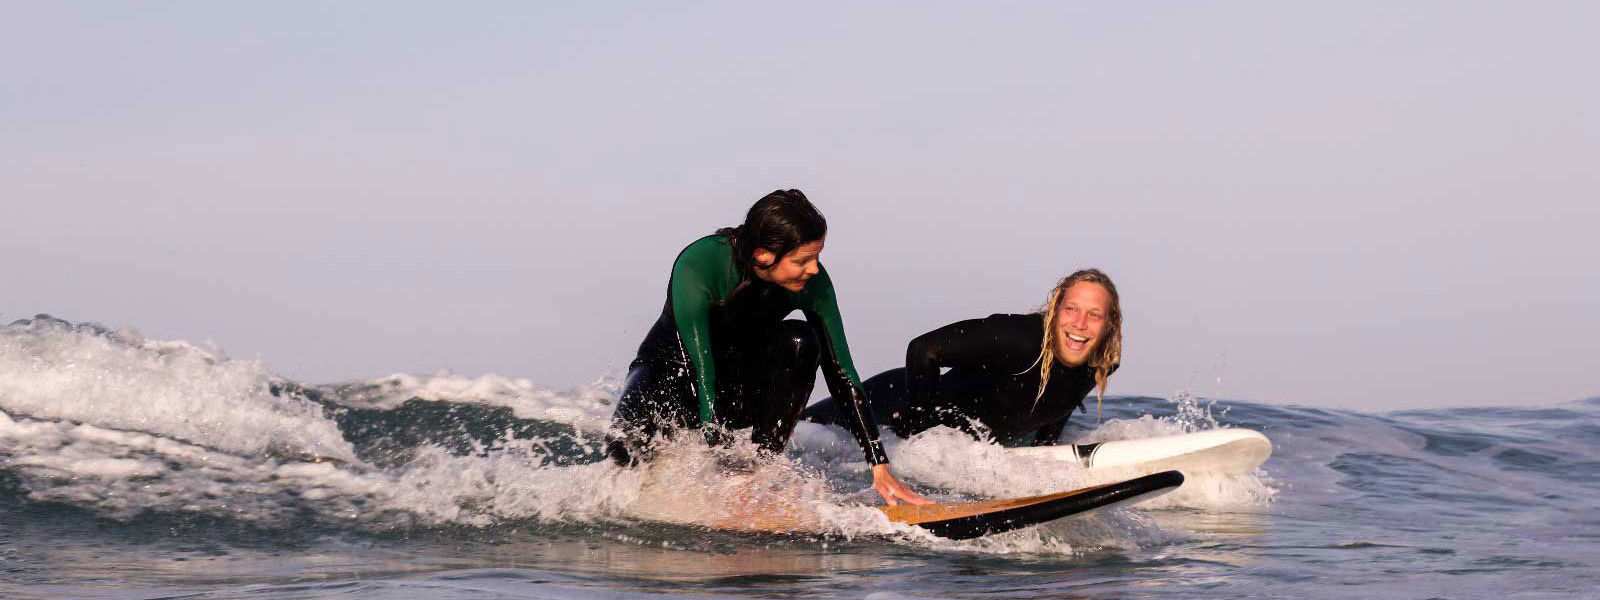 Surf lesson for beginners